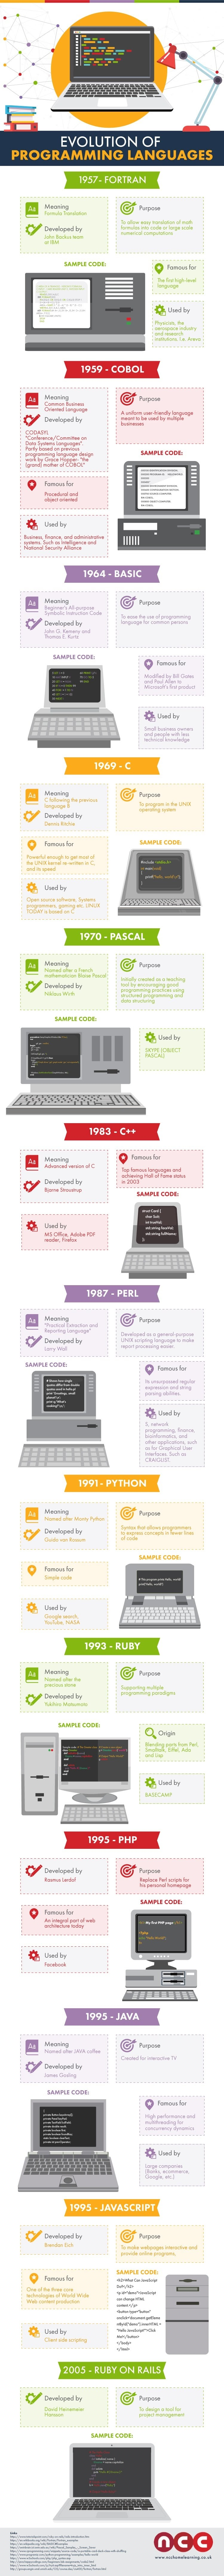 The Evolution of Computer Language - #Infographic